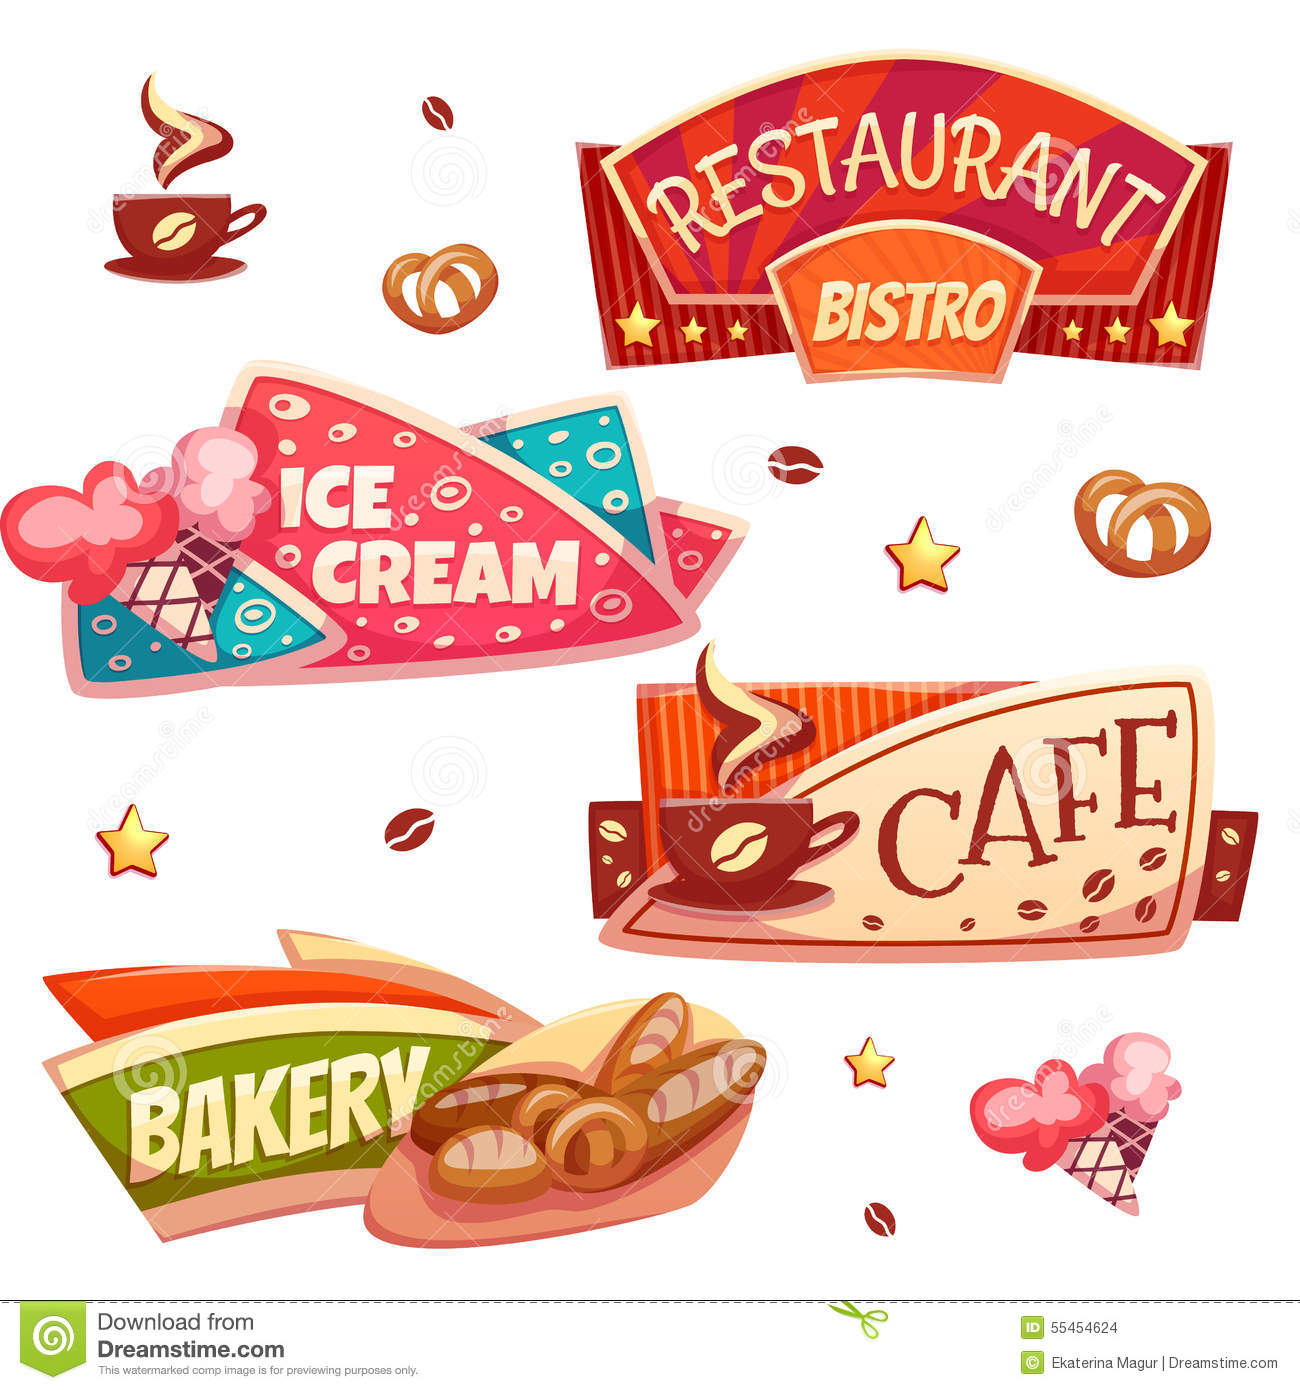 Cafe Restaurant Ice Cream Shop And Bakery Cartoon Vector